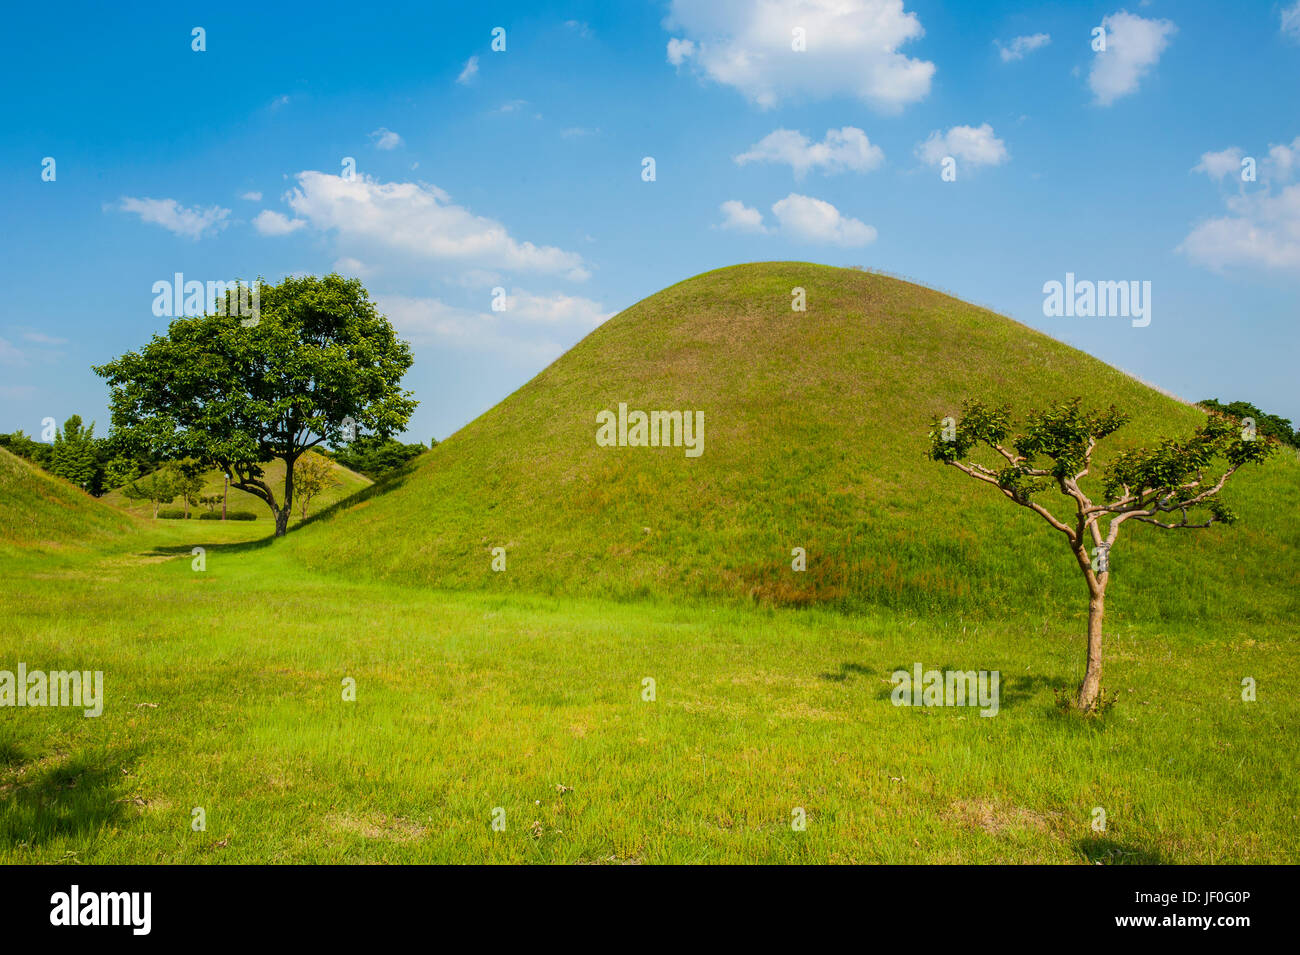 Tumuli park with its tombs from the Shilla monarchs in the Unesco world heritage sight Gyeongju, South Korea Stock Photo